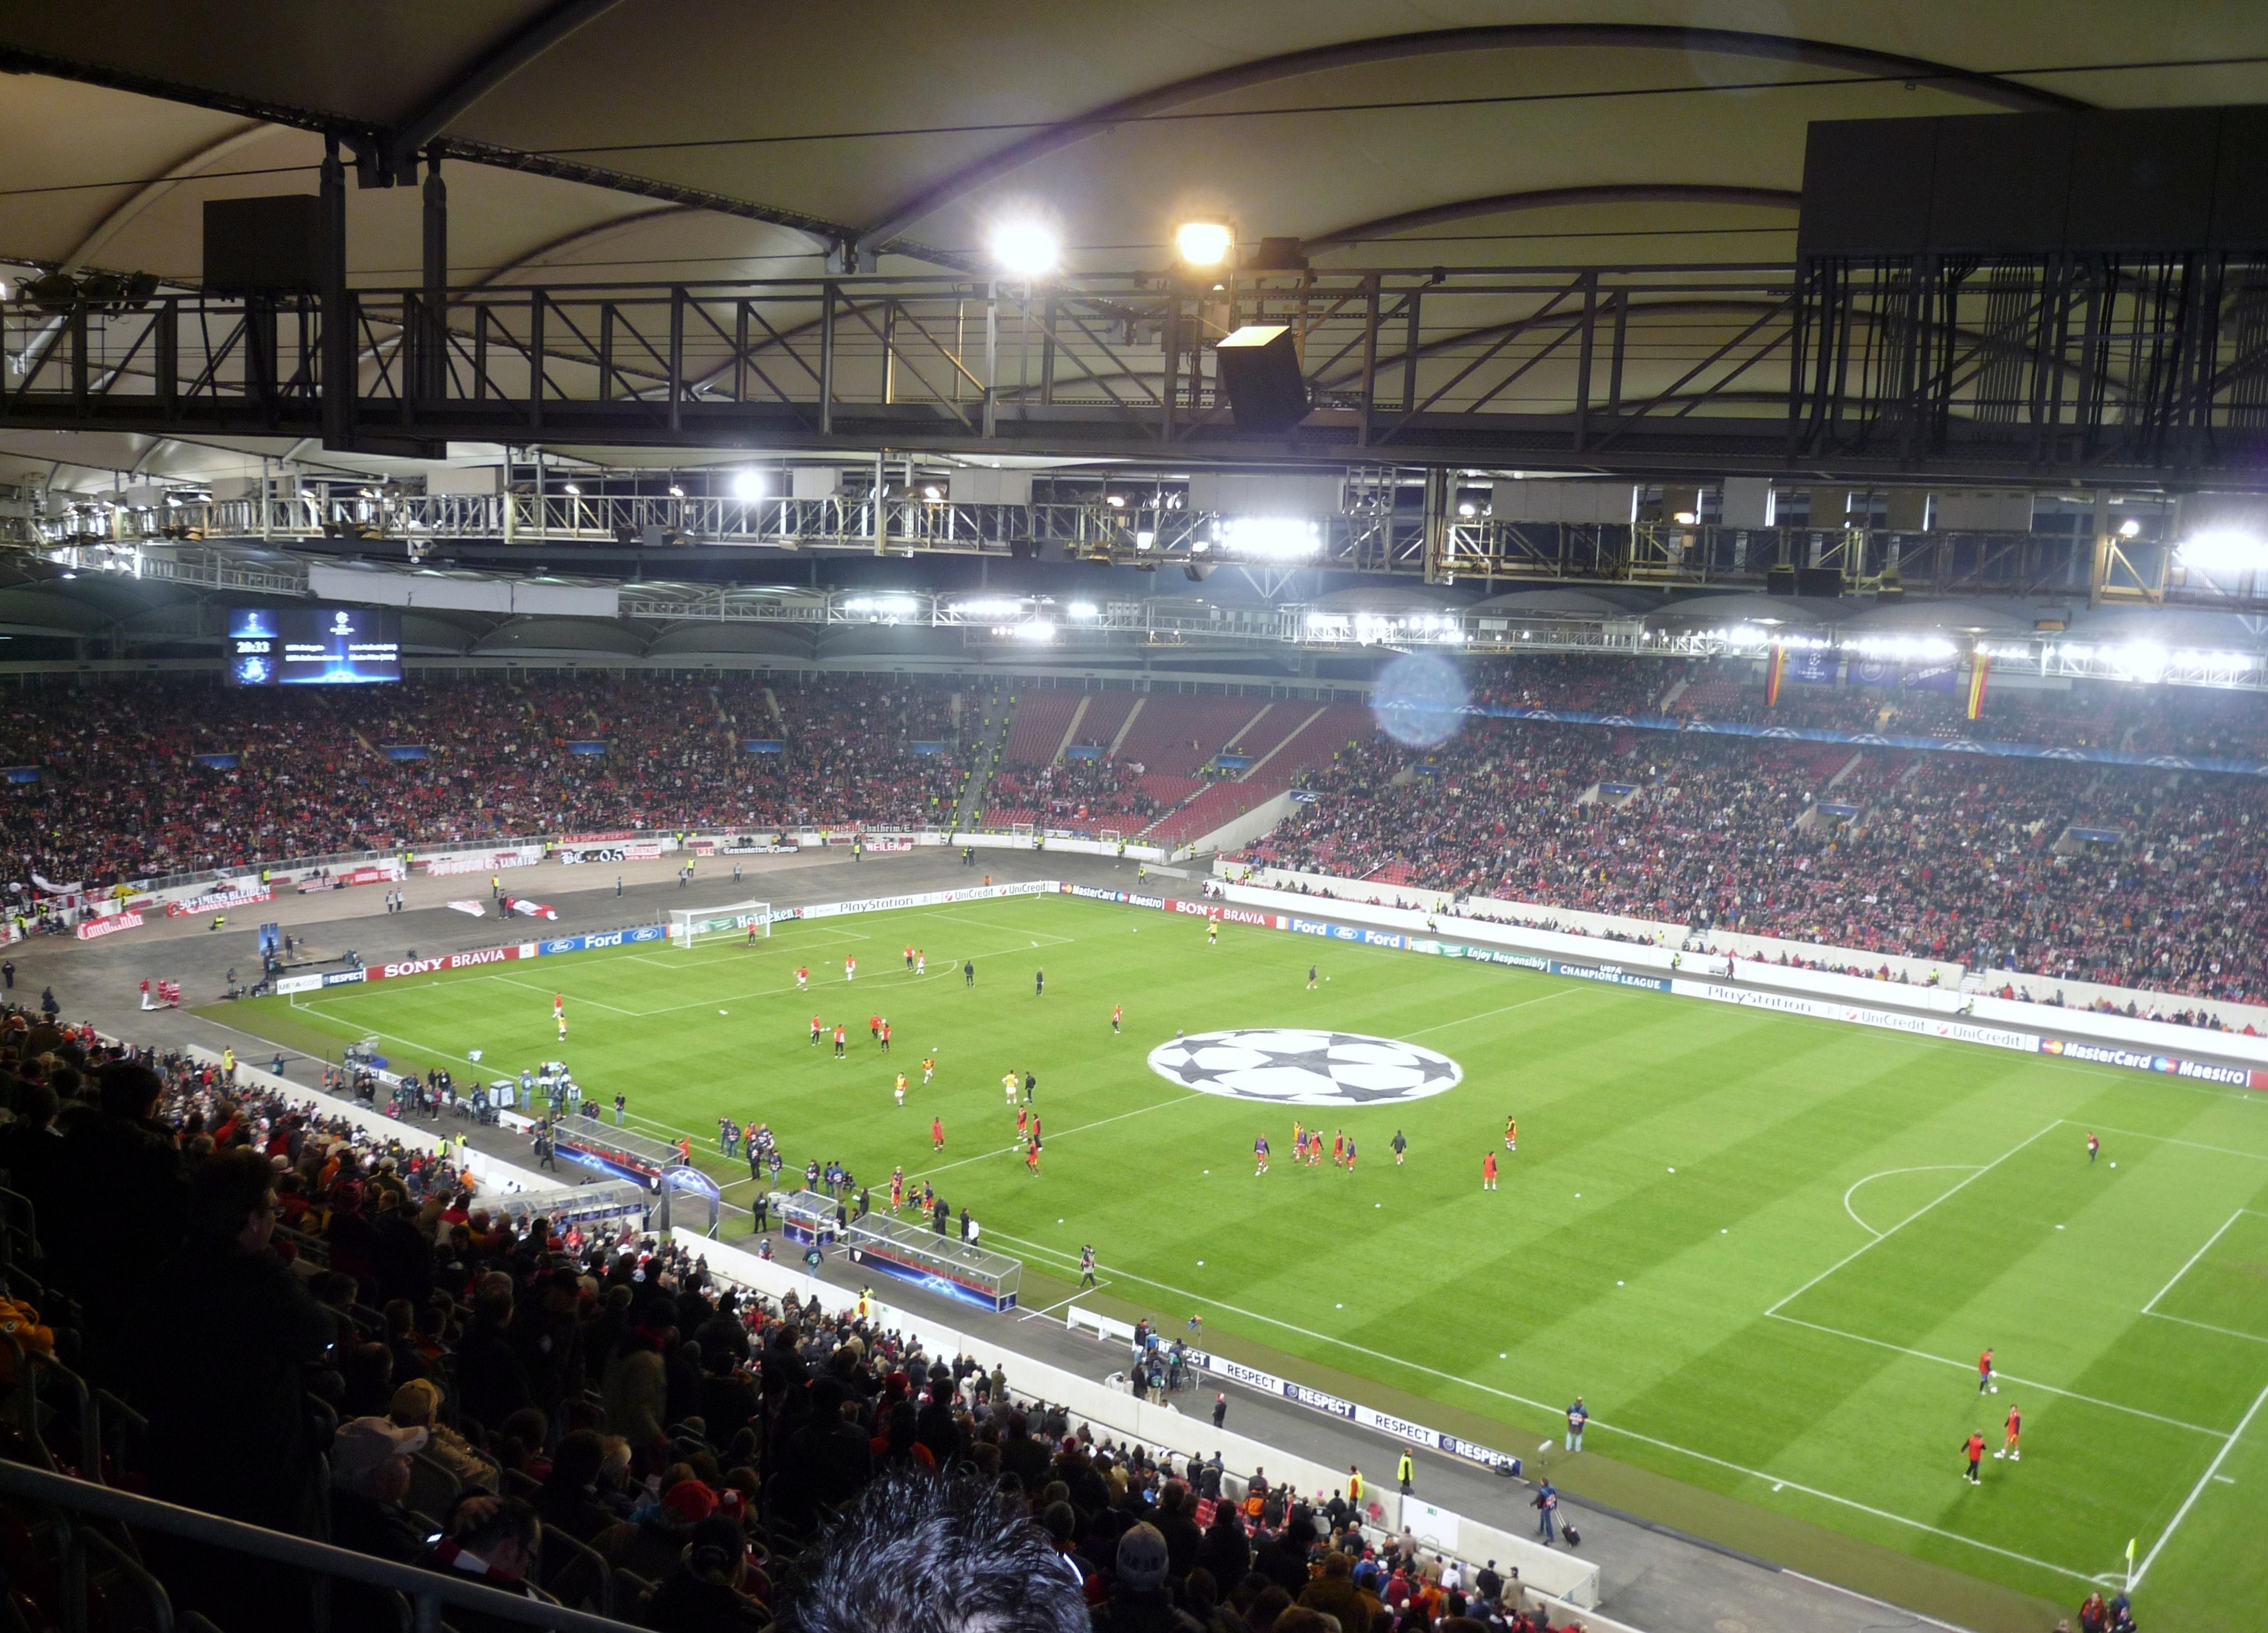 Mercedes benz arena vfb stuttgart vs sevilla shared by for Mercedes benz stadium atlanta hotels